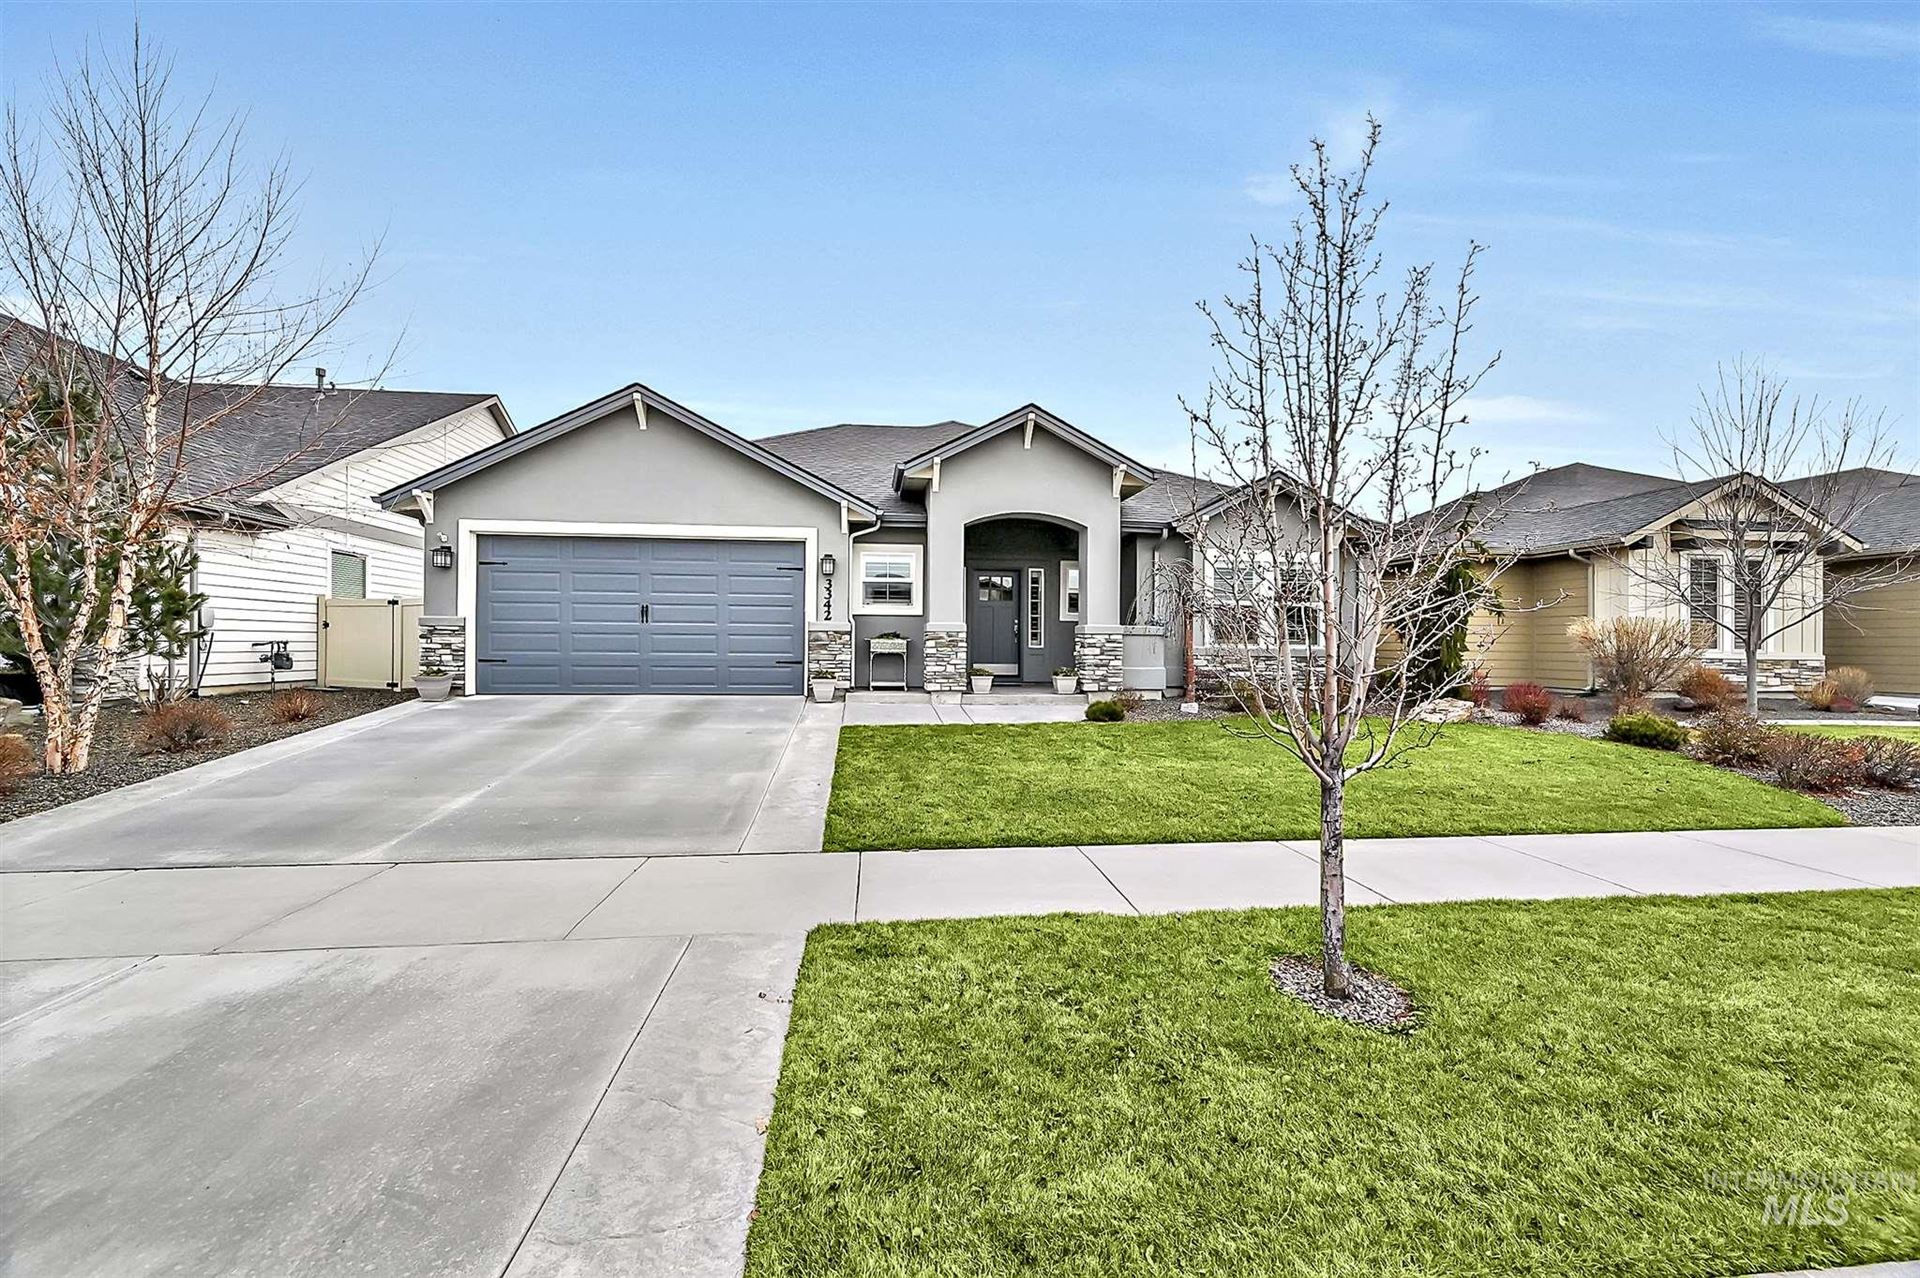 Photo of 3342 S Wallberg Ave, Eagle, ID 83616 (MLS # 98791527)